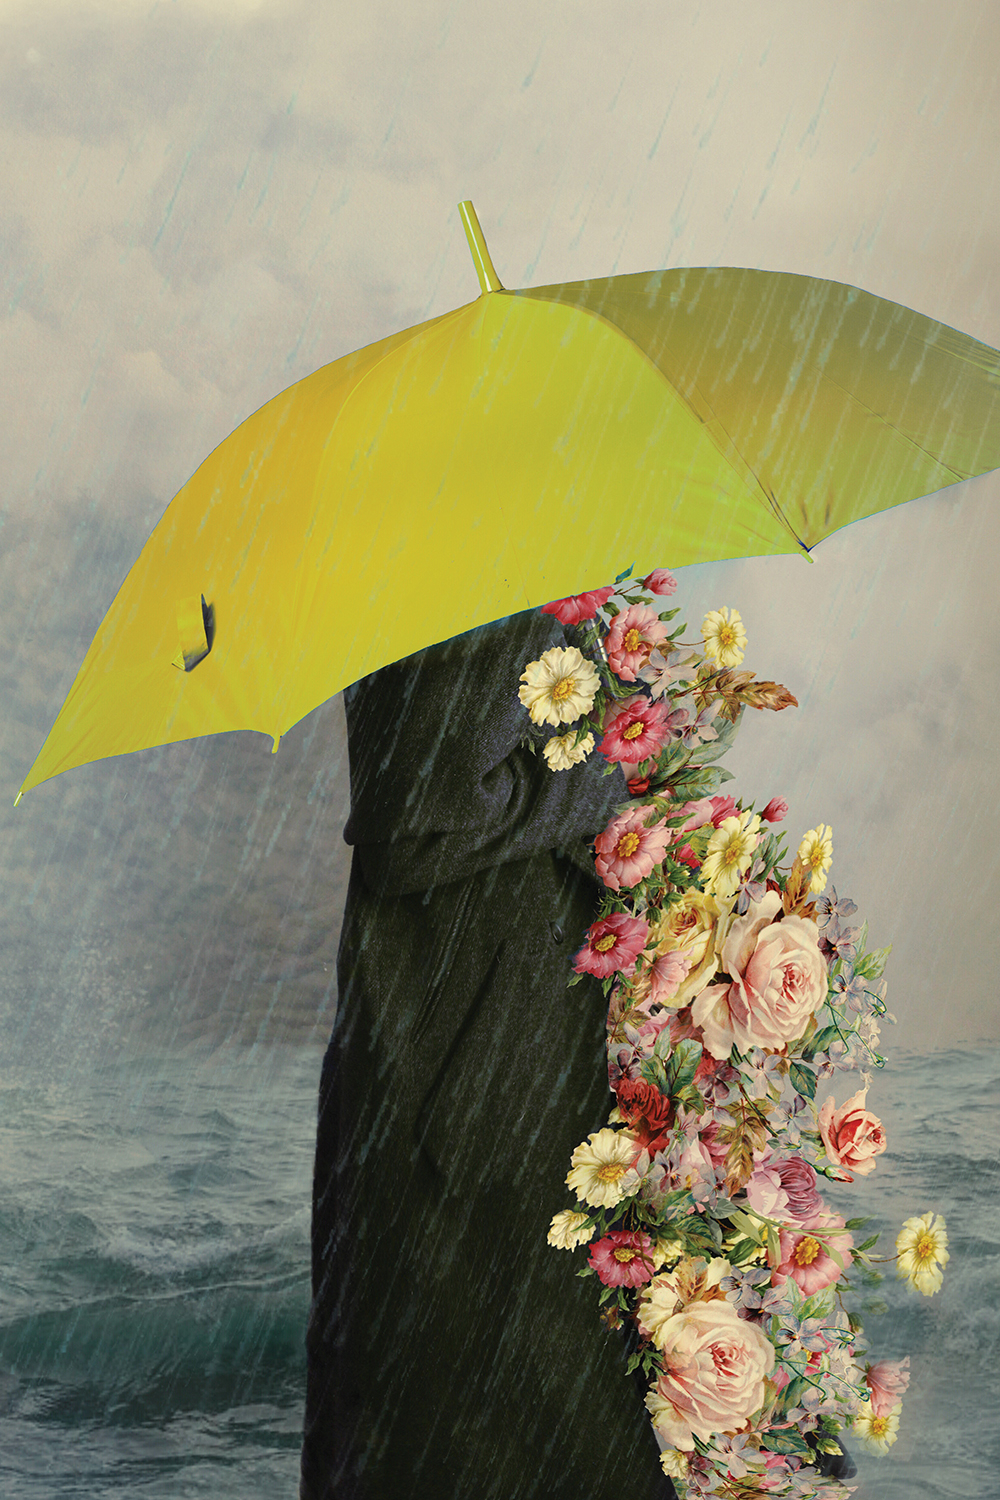 Healing by Deandra Lee shows a person holding a yellow umbrella while engulfed in colorful florals